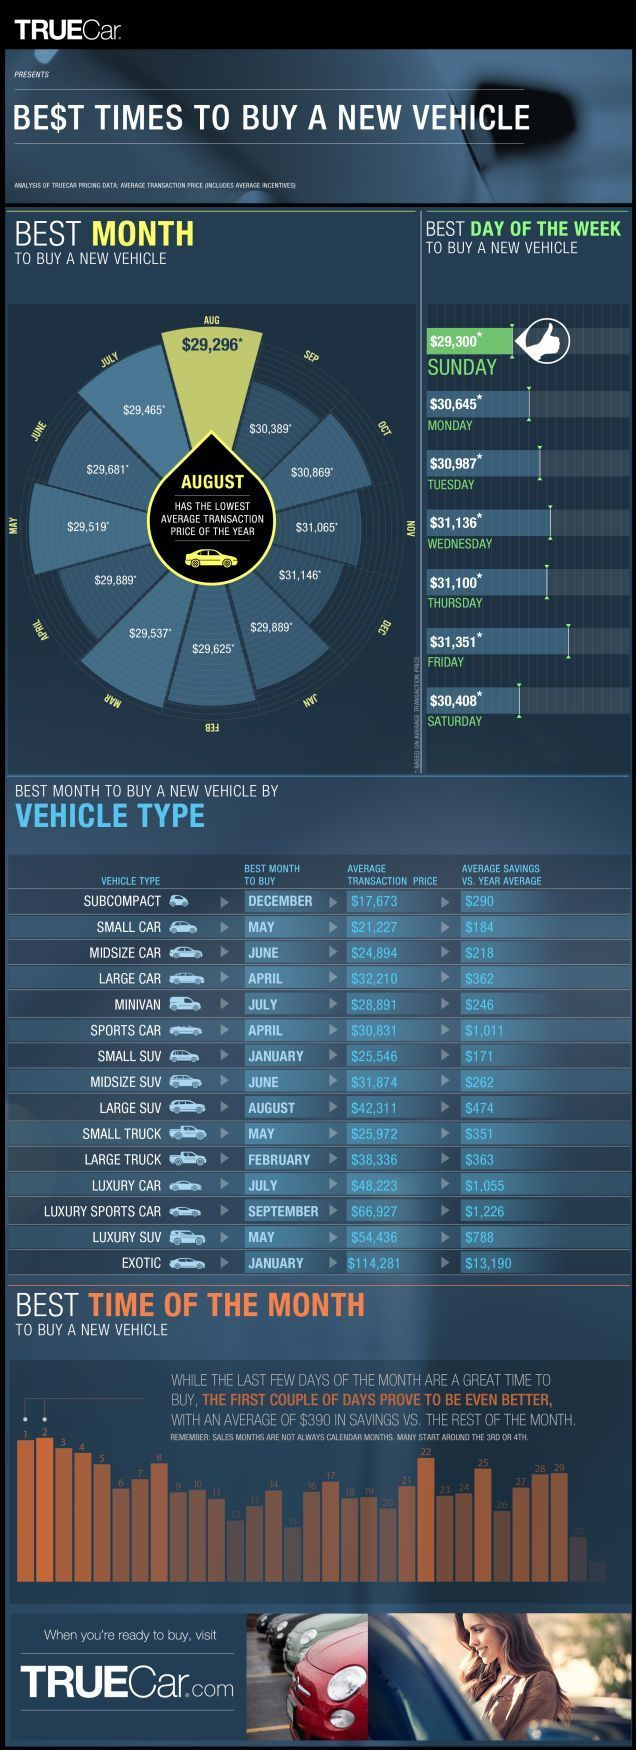 #infographic #infographic #reveals #reveals #times #ti